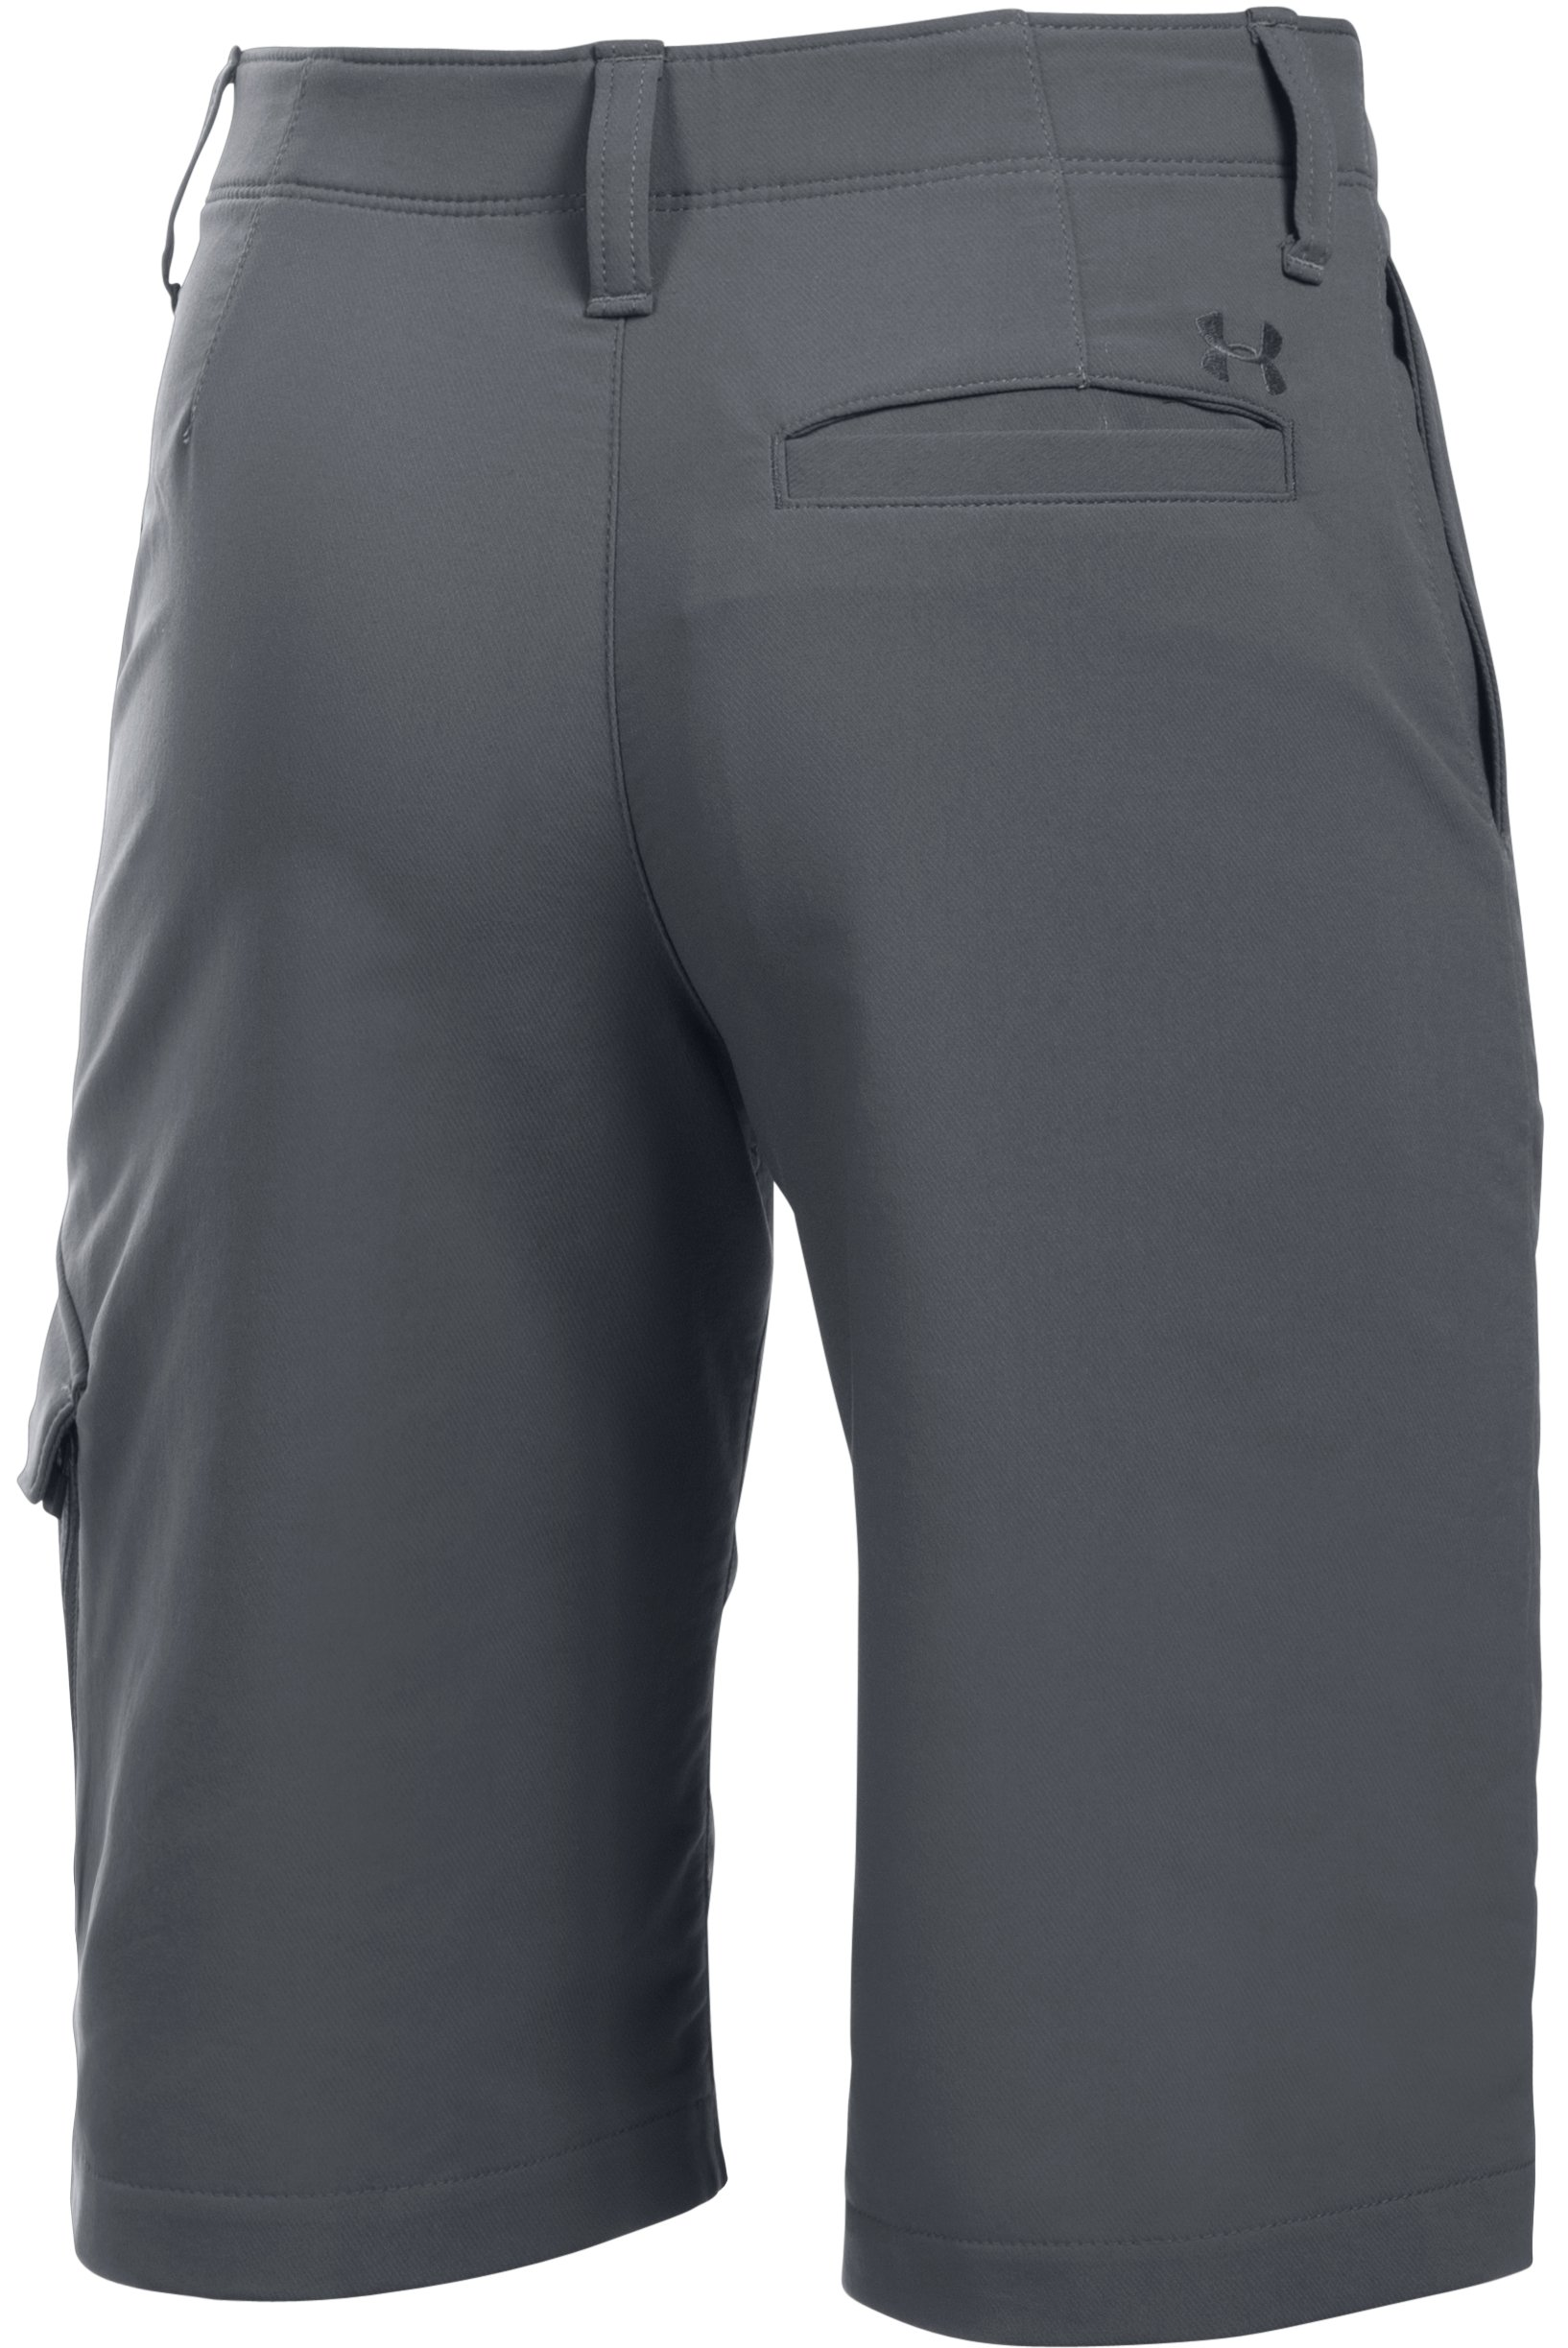 Boys' UA Match Play Cargo Shorts, RHINO GRAY,